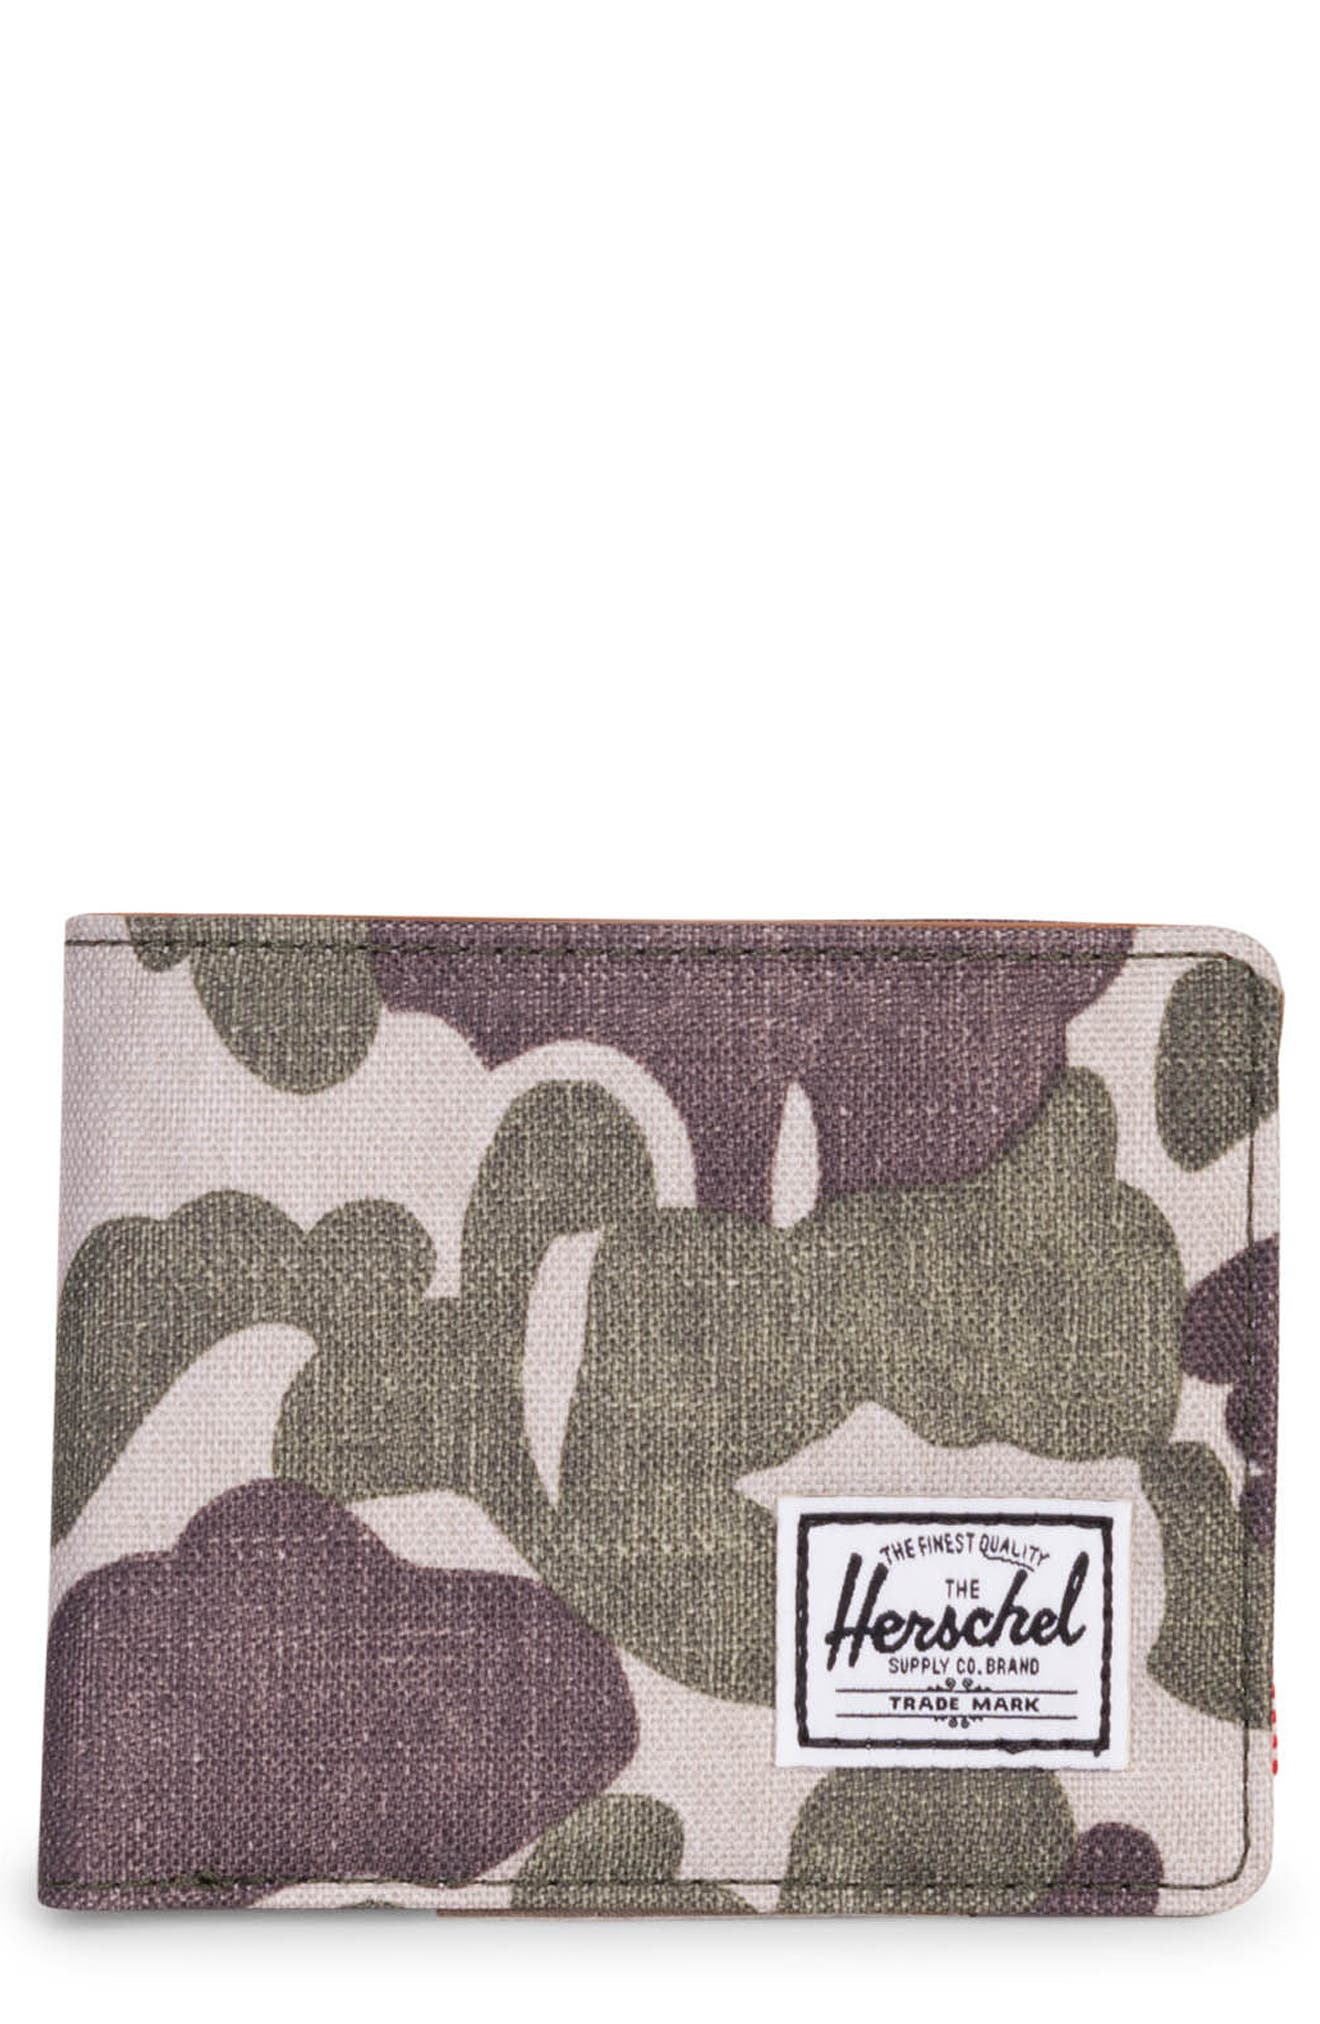 Hank Wallet,                         Main,                         color, Frog Camo/ Tan Synth Leather